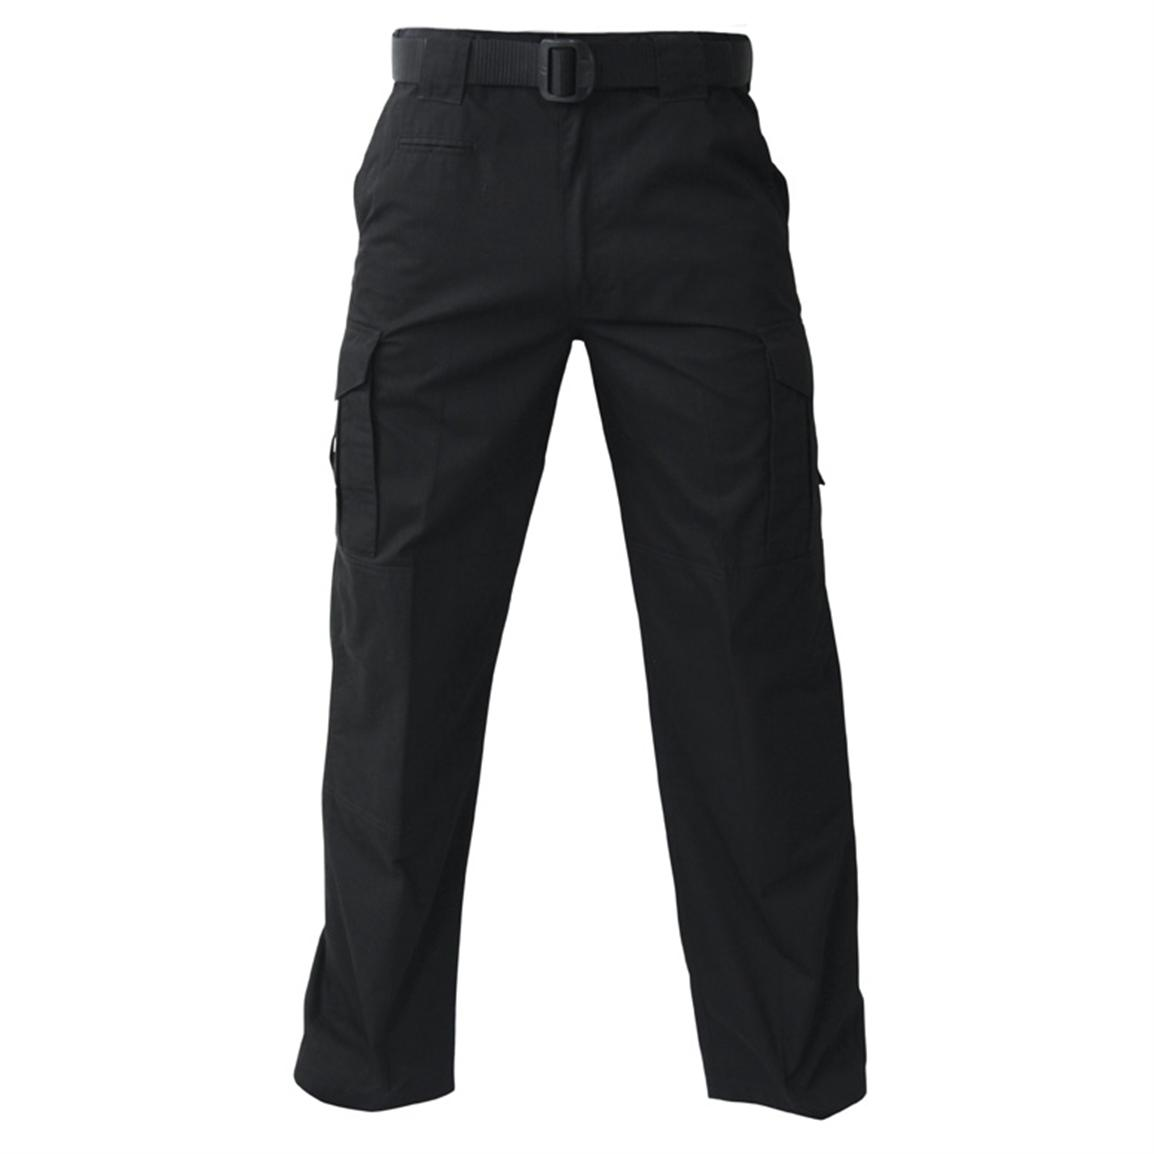 Men's Propper™ Critical Response™ EMS Pants, Black